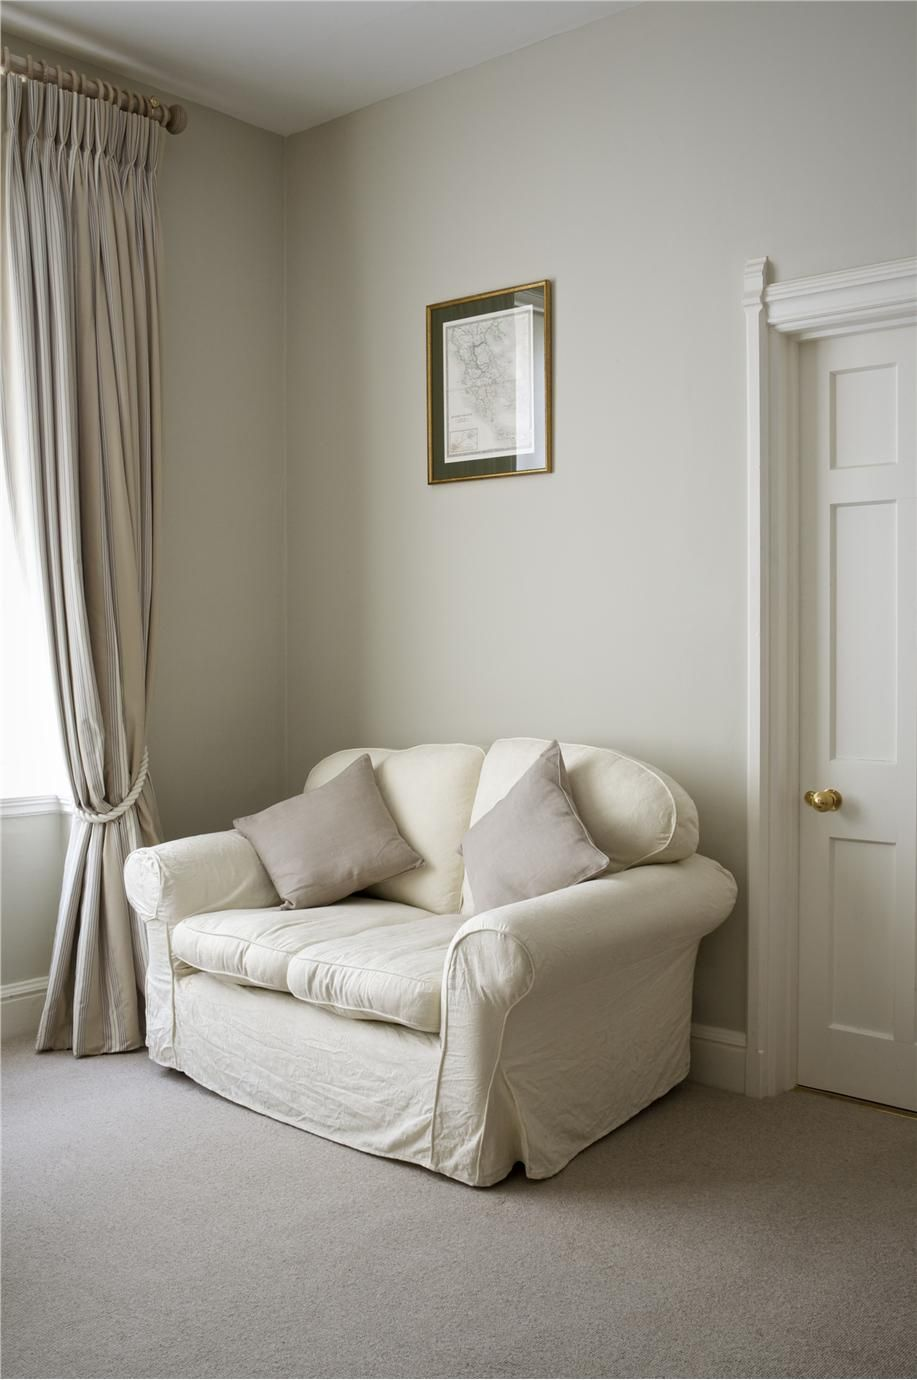 Wall Colour Inspiration: Farrow And Ball Lounge With Walls In Old White Estate